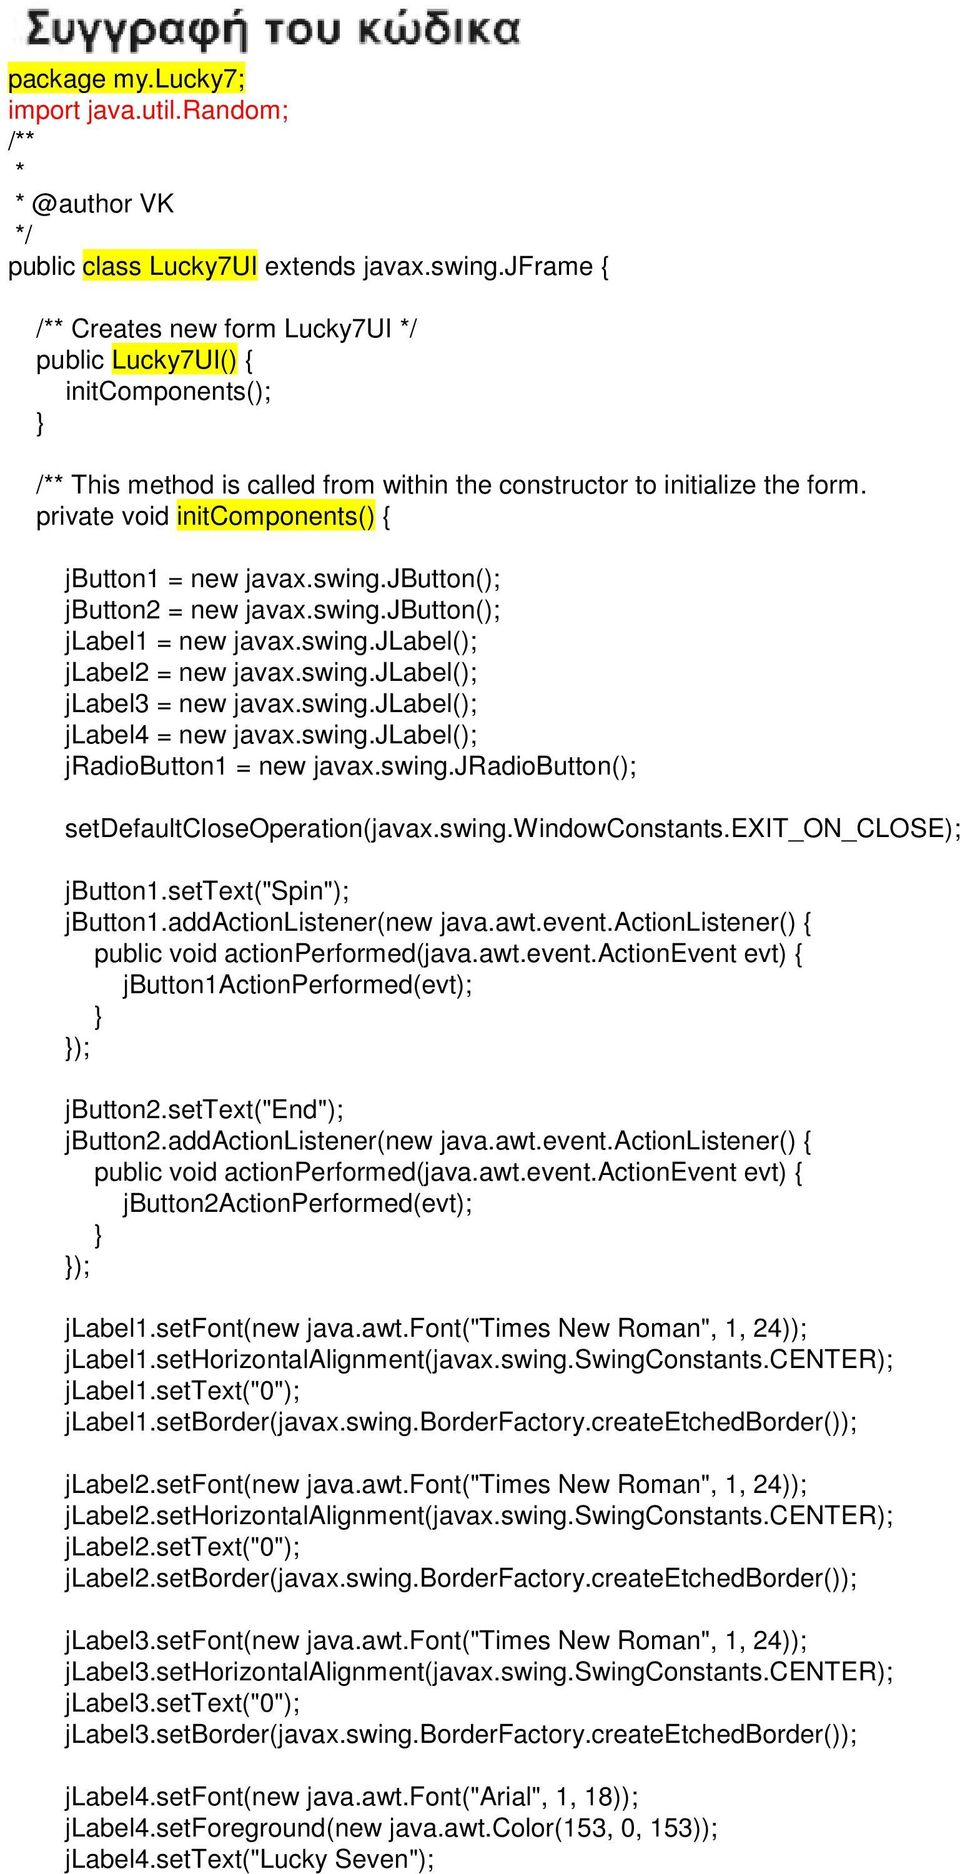 private void initcomponents() { jbutton1 = new javax.swing.jbutton(); jbutton2 = new javax.swing.jbutton(); jlabel1 = new javax.swing.jlabel(); jlabel2 = new javax.swing.jlabel(); jlabel3 = new javax.